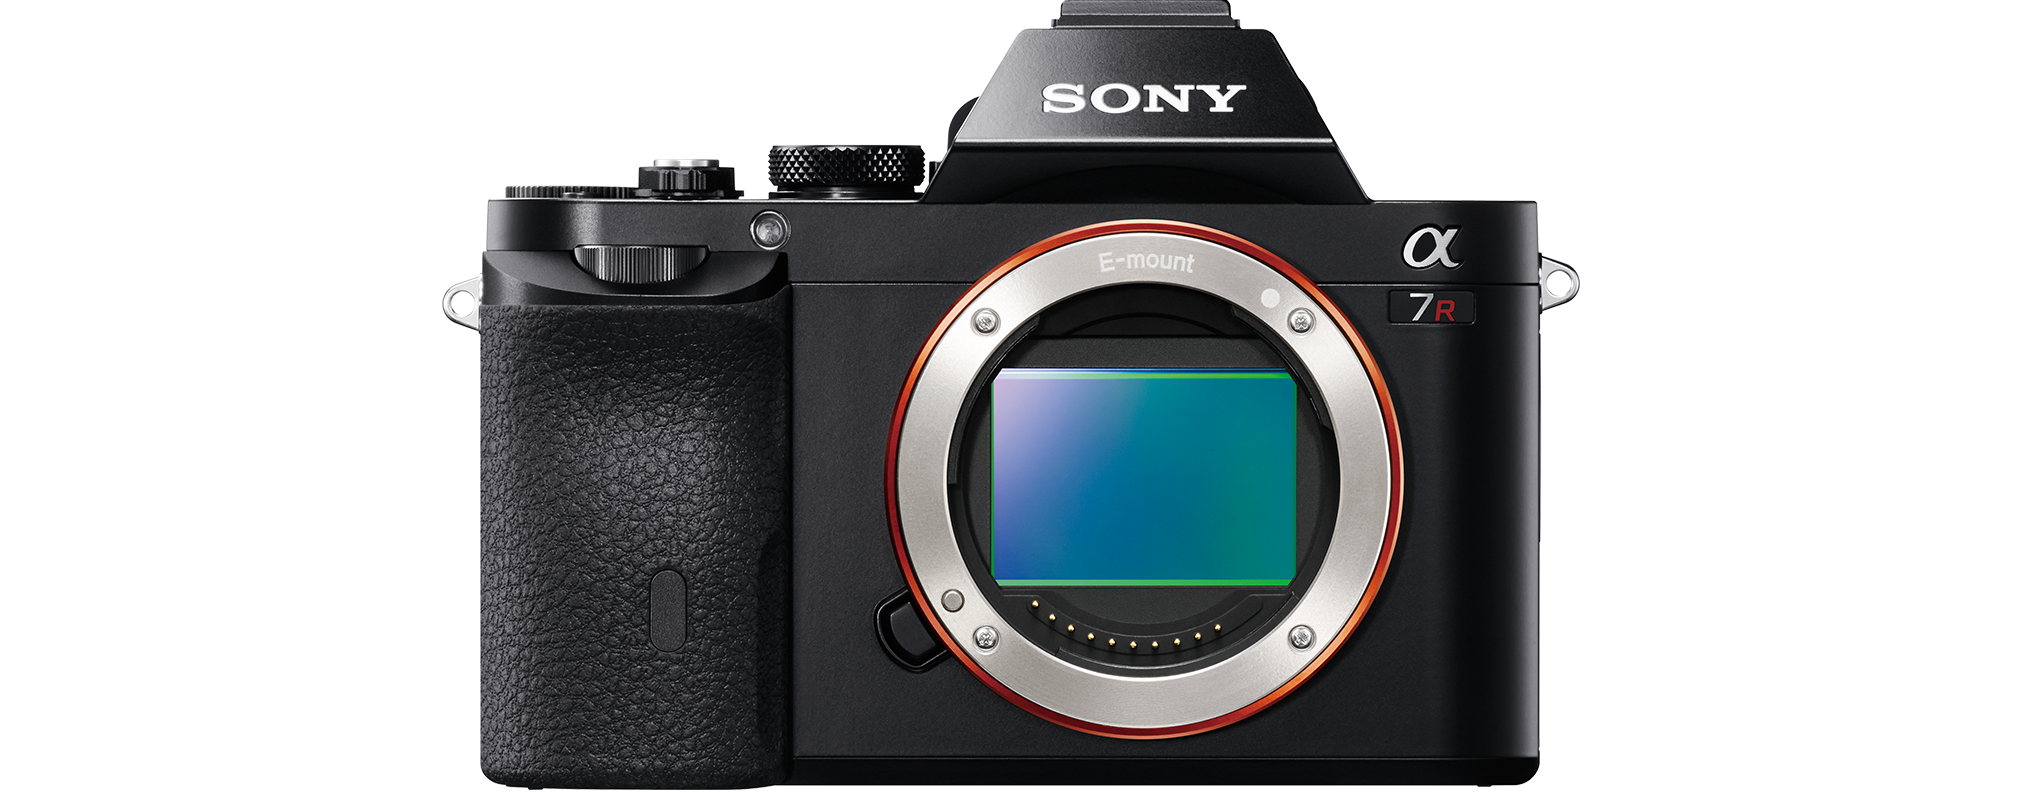 Sony Alpha a7R Full Frame Mirrorless Camera Black by Sony